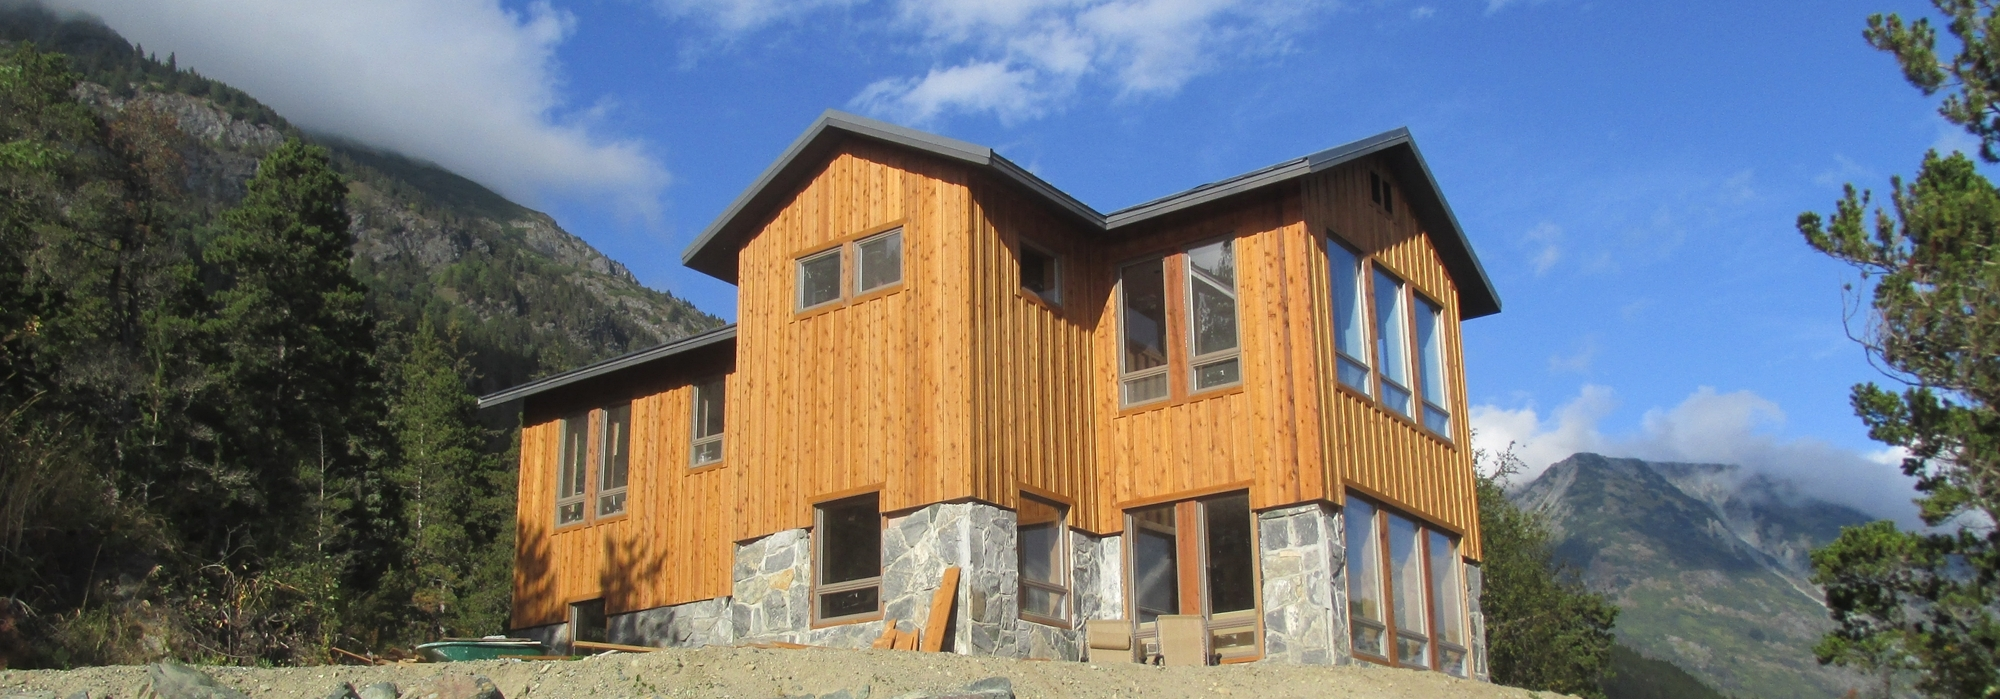 Stone House – Haines Highway 8 Mile